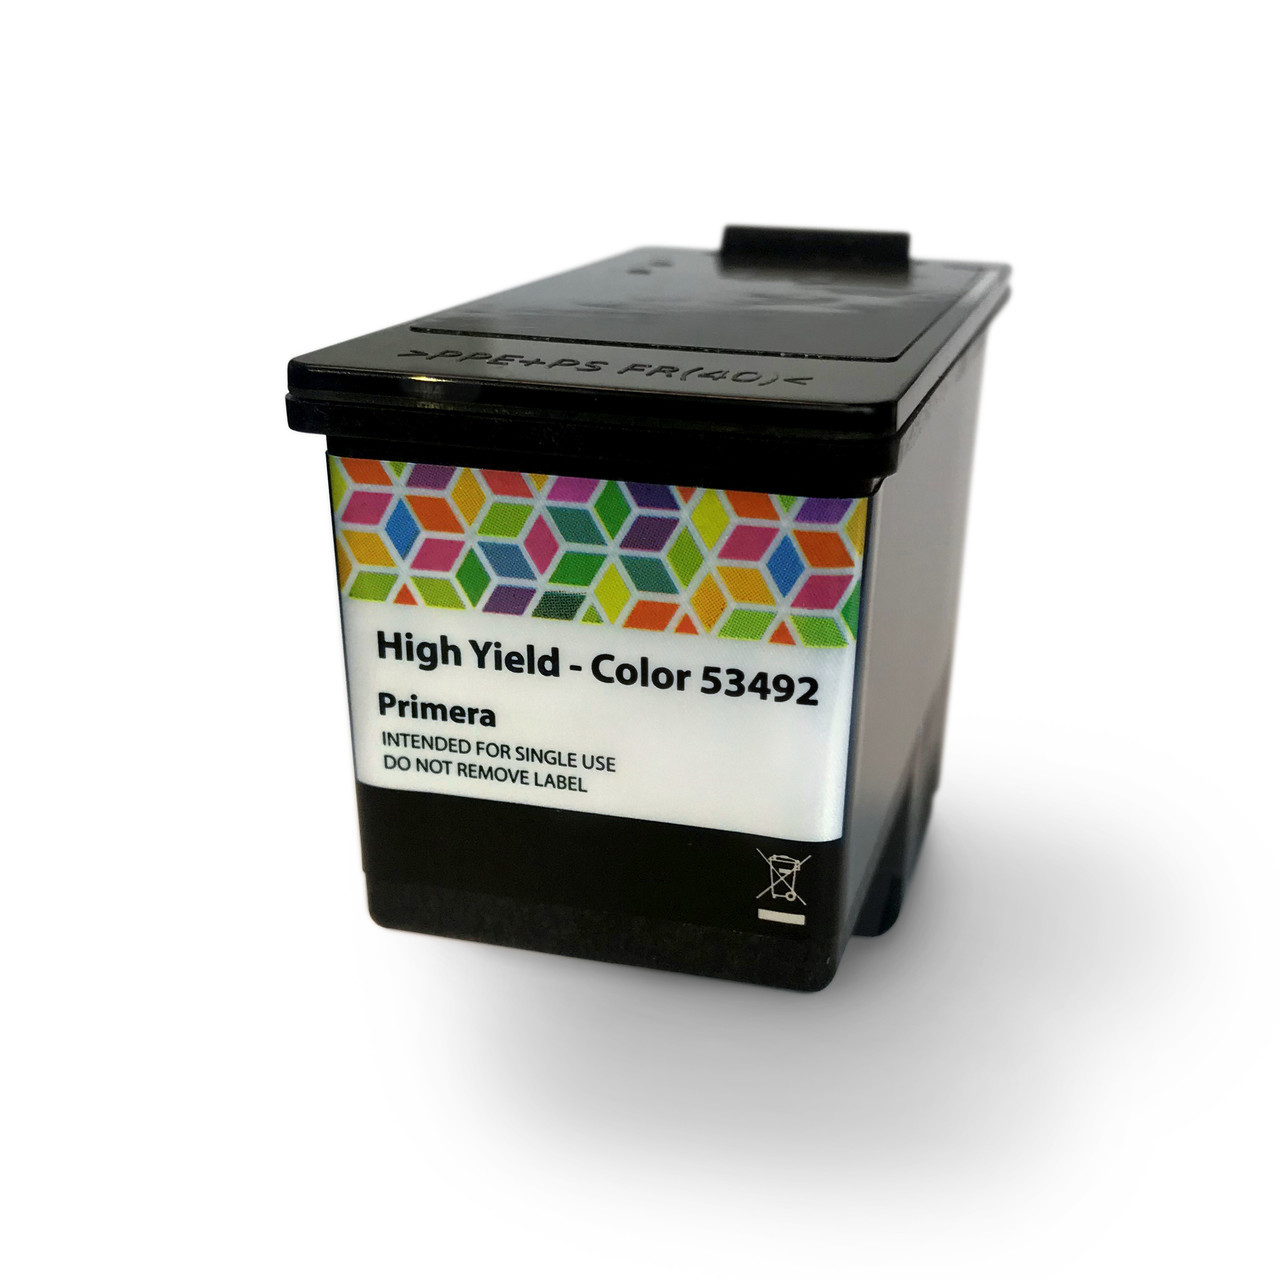 View Primera LX910 Ink Cartridge - Dye